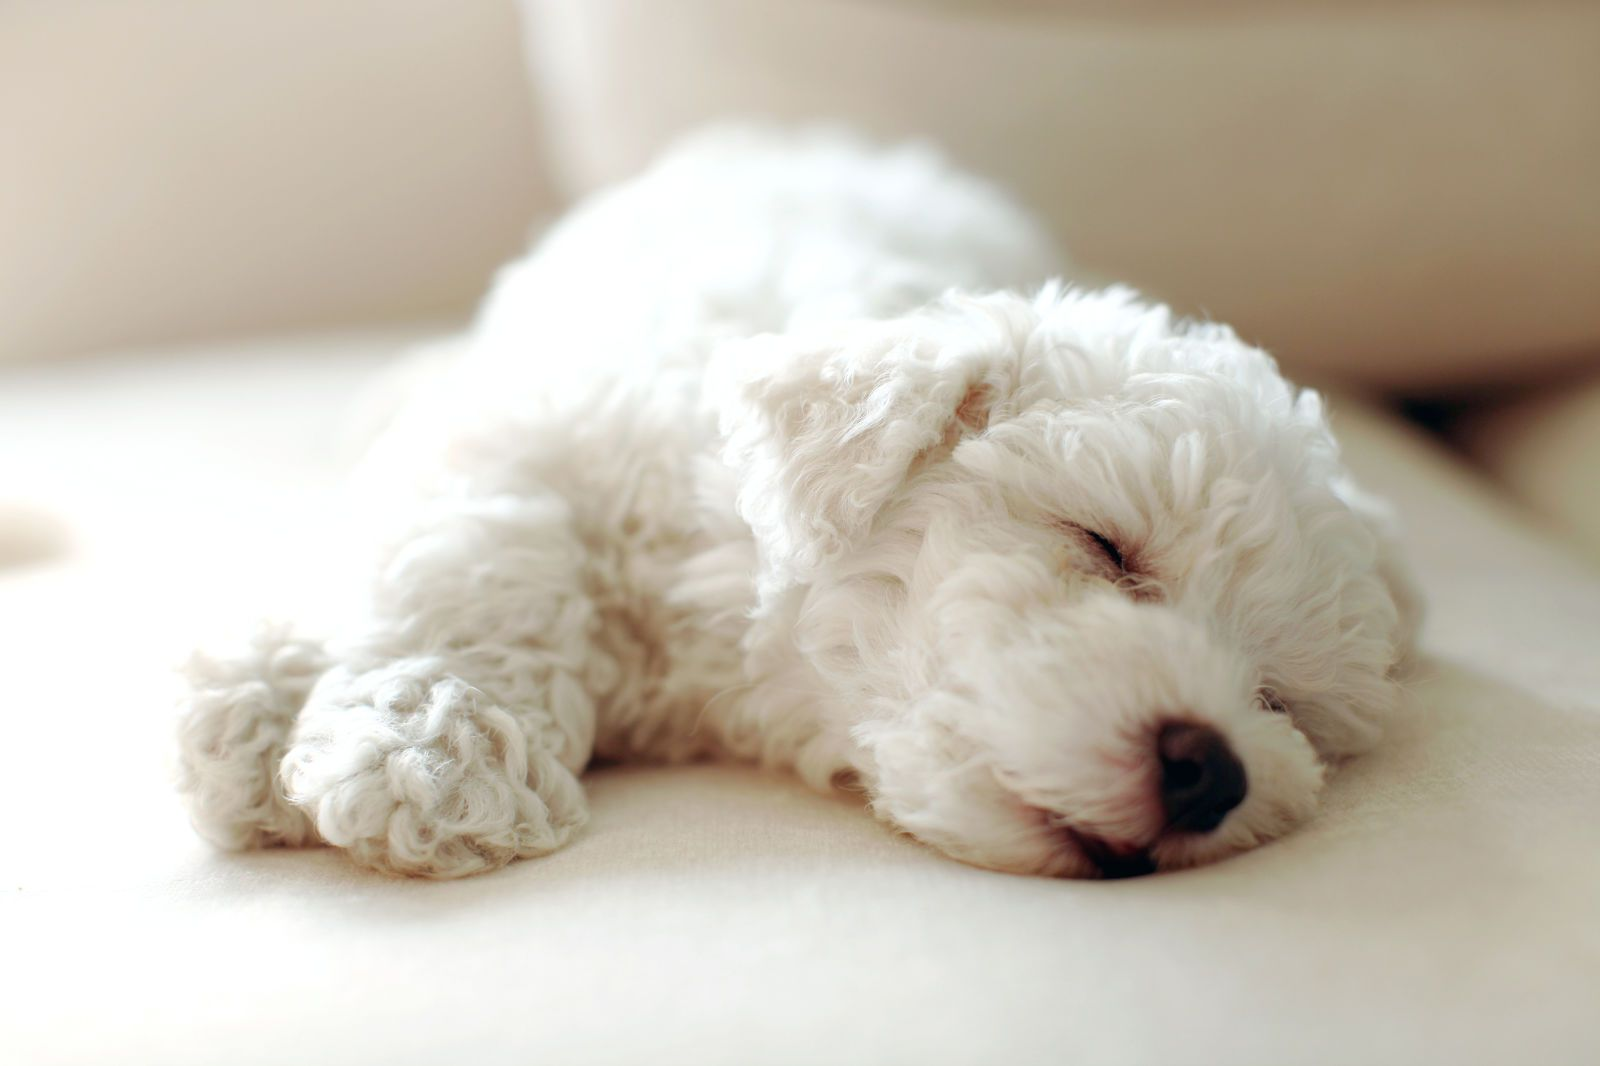 Thanks To Their Petite Size U2014 They Typically Weigh Between 7 And 12 Pounds  U2014 Bichon Frises Are A Great Choice For Tiny Apartments. Though They Are A  Playful ...